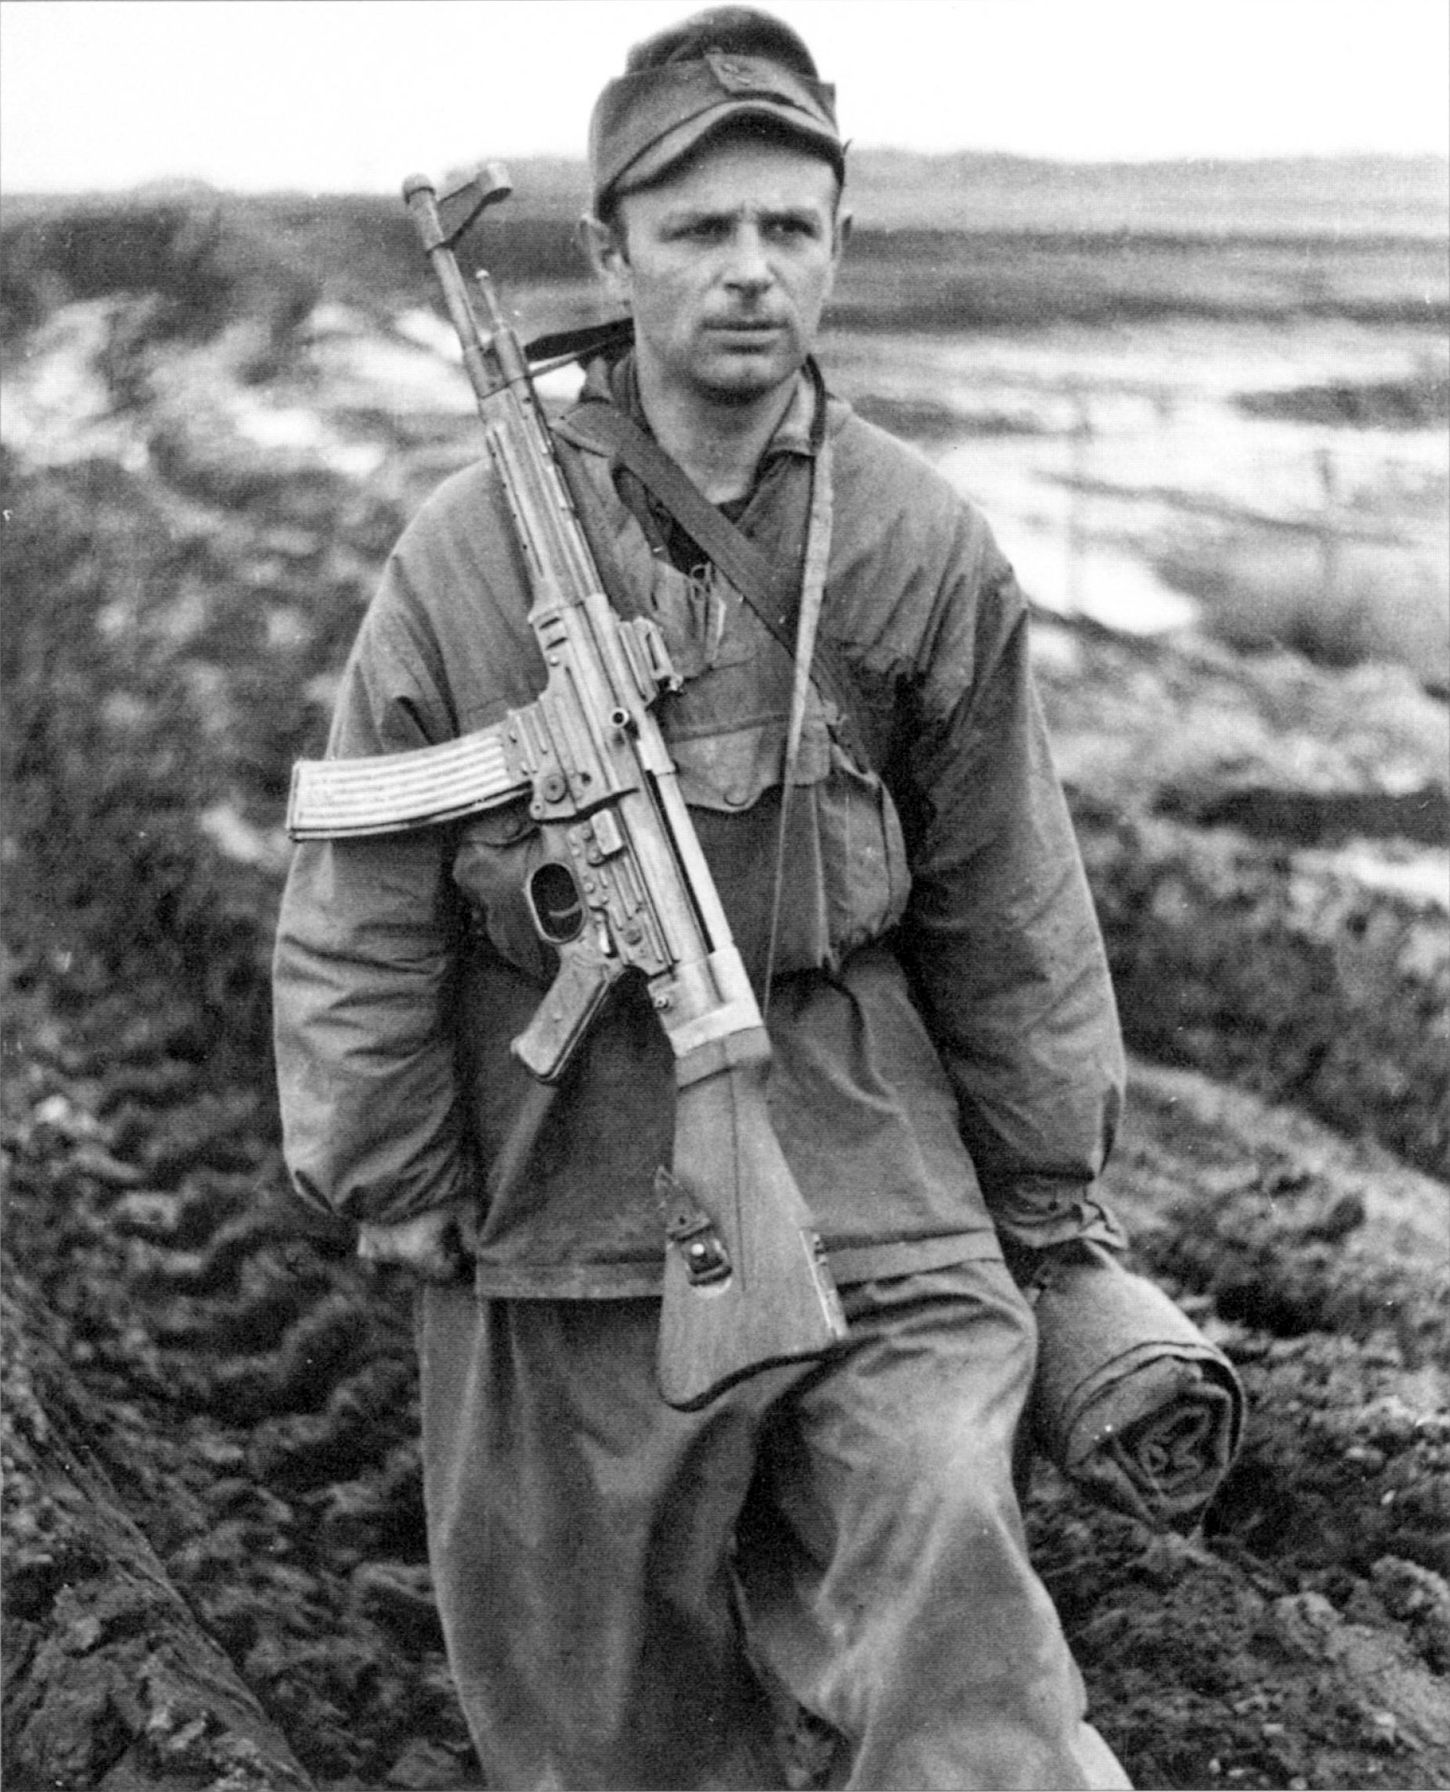 Photo German soldier is carrying an StG-43-44 Sturmgewehr assault rifle.